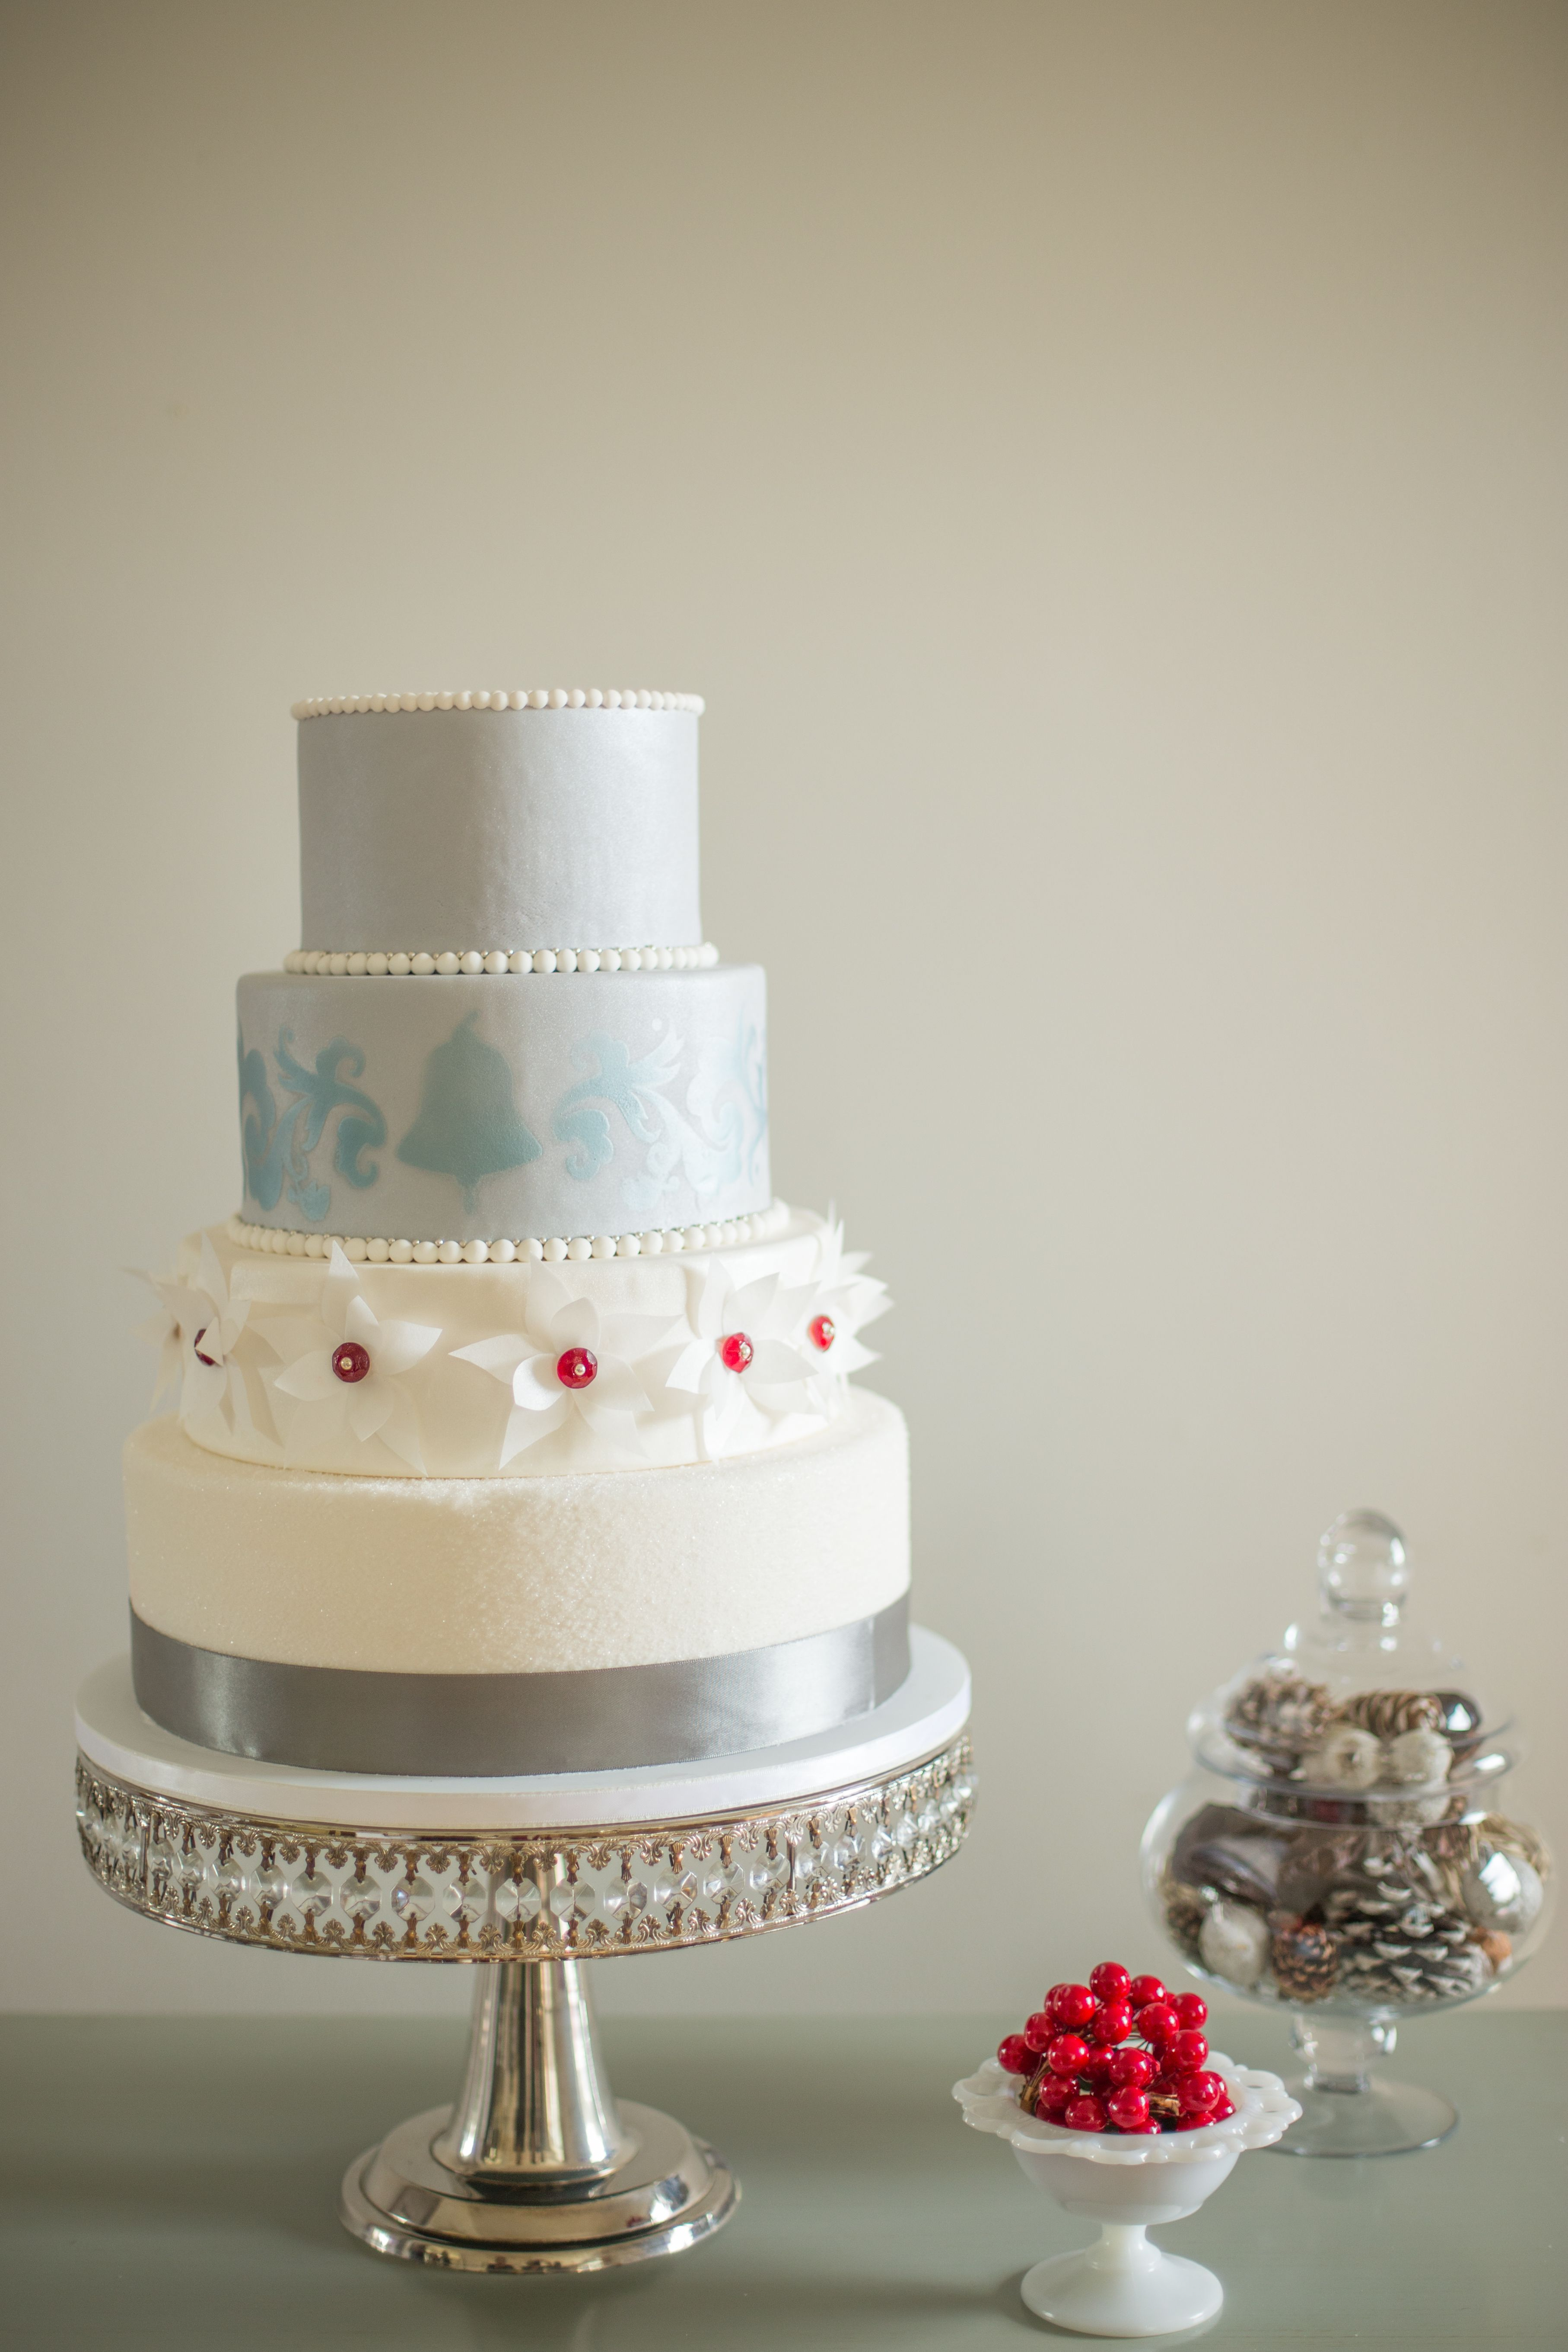 Holiday Bell Cake for Cake Central Magazine - Fondant cake with ...